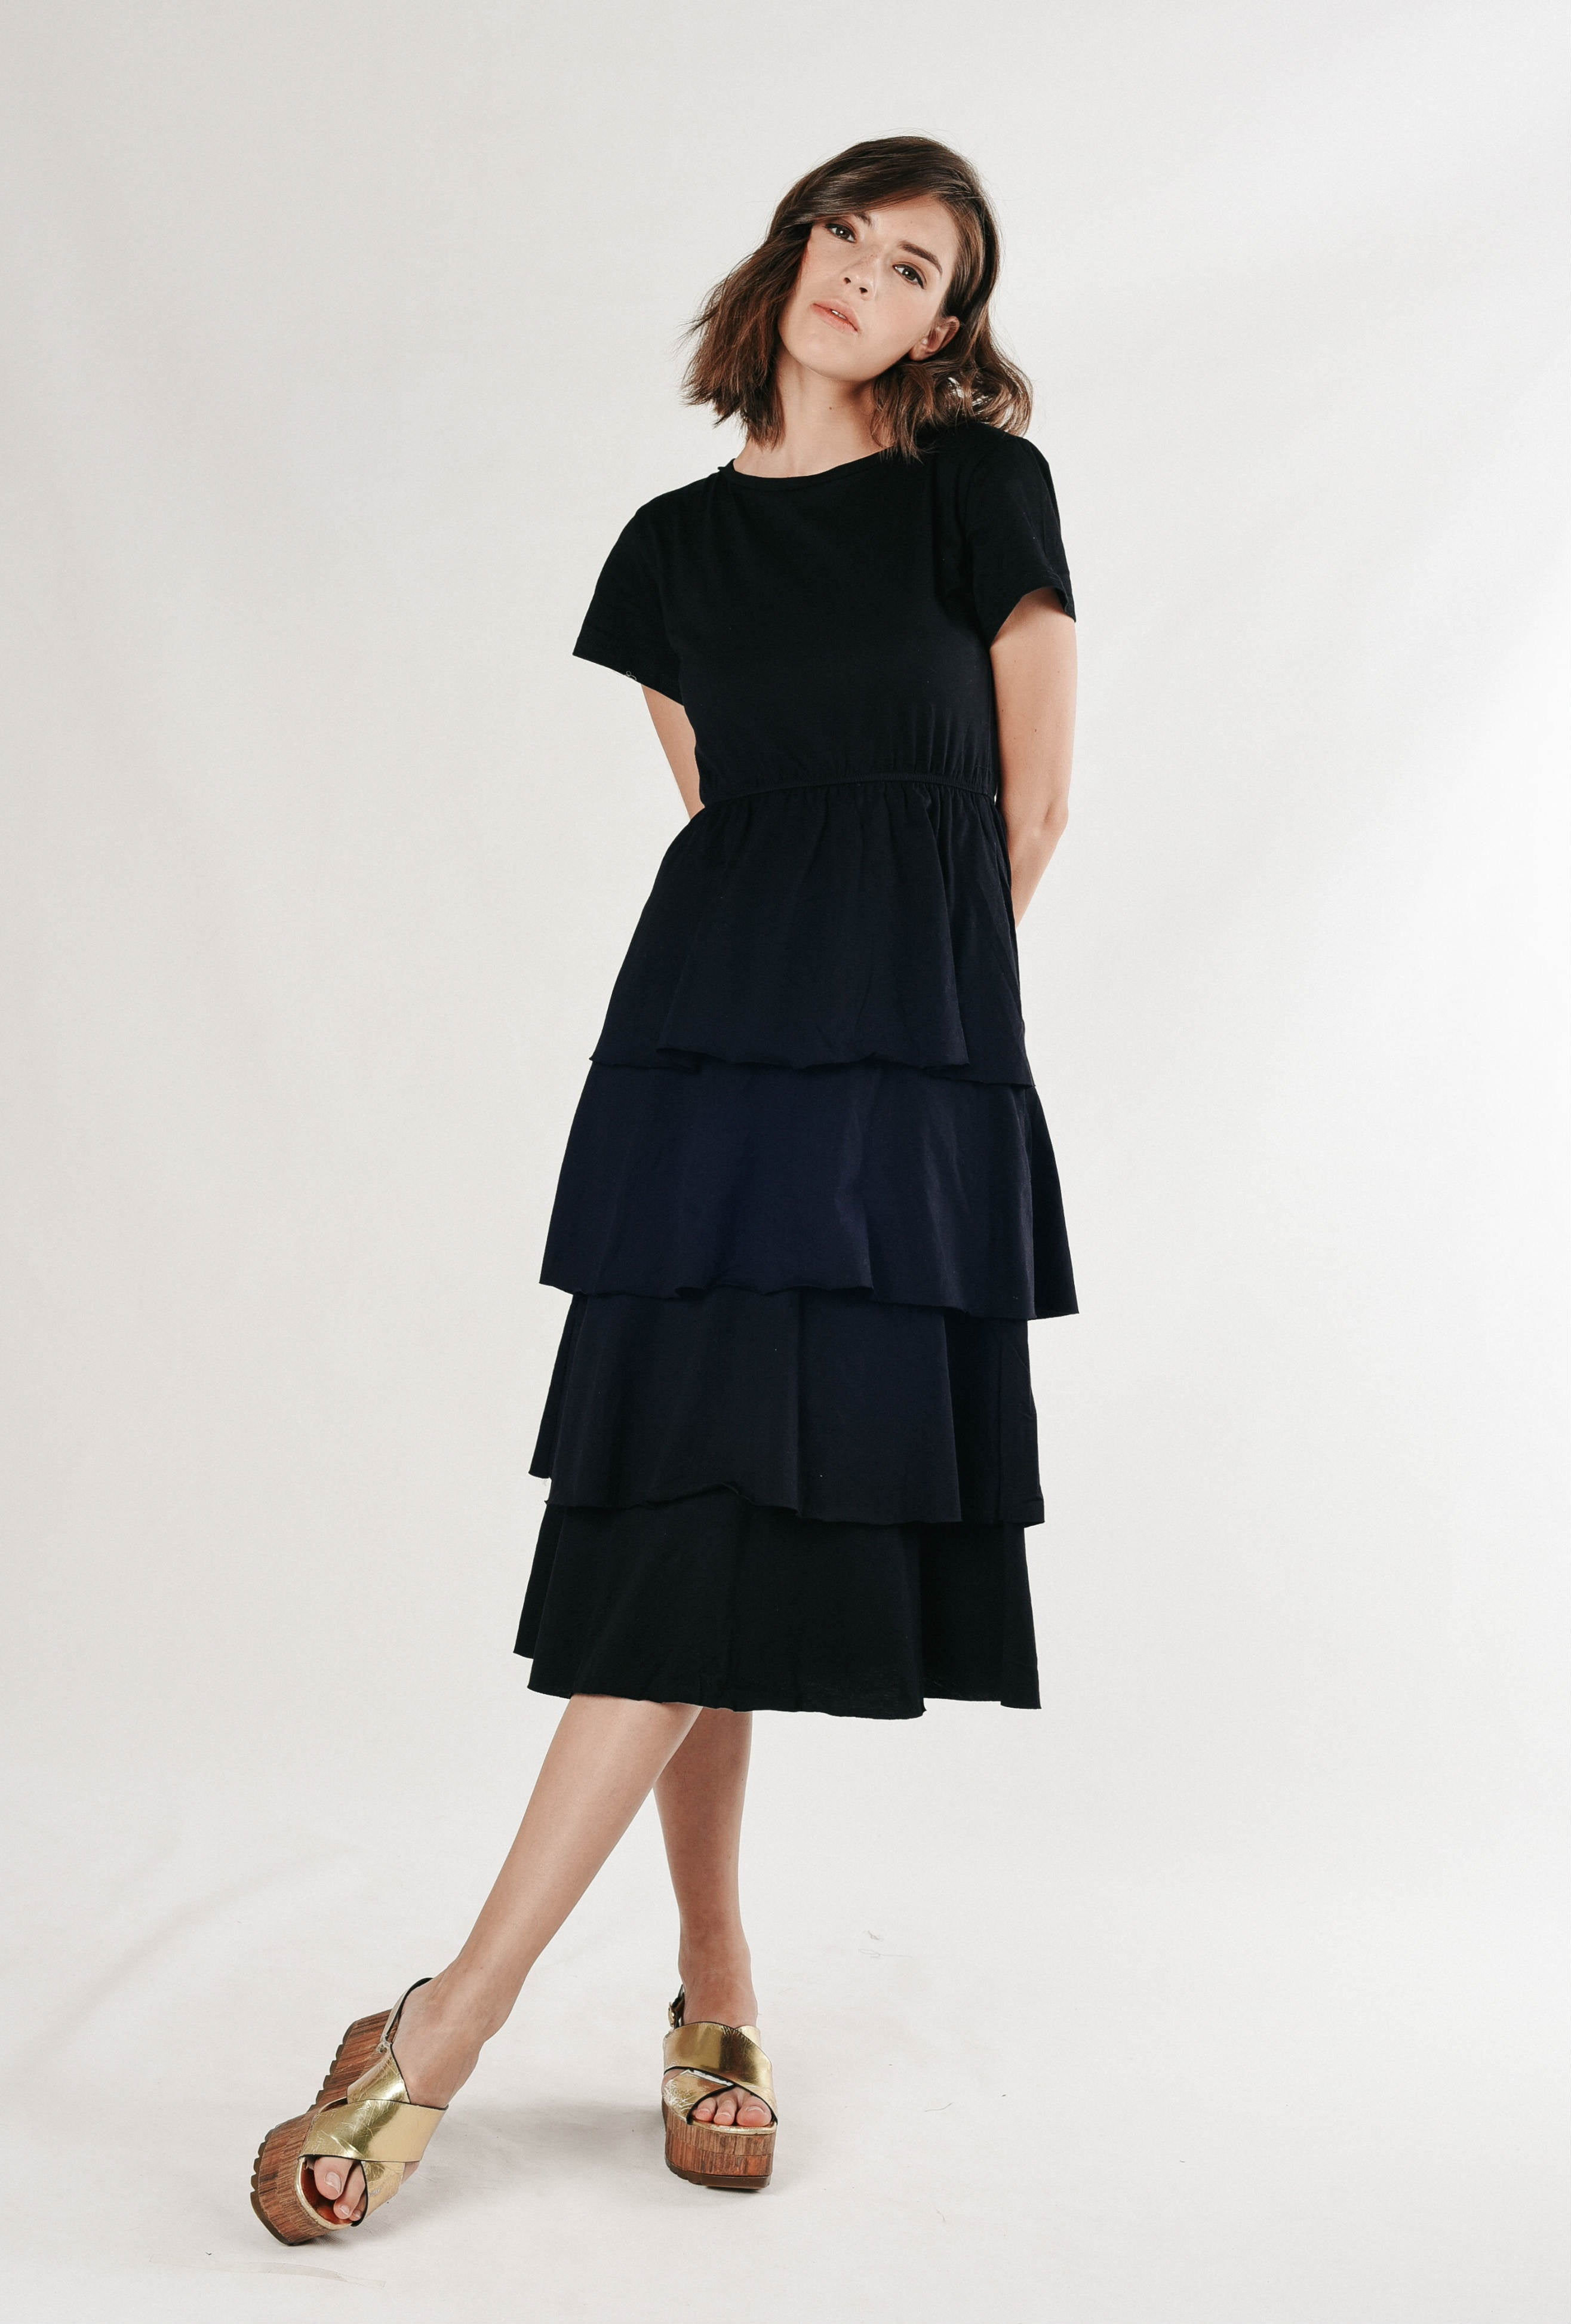 Pearlyn Layered Dress - Black